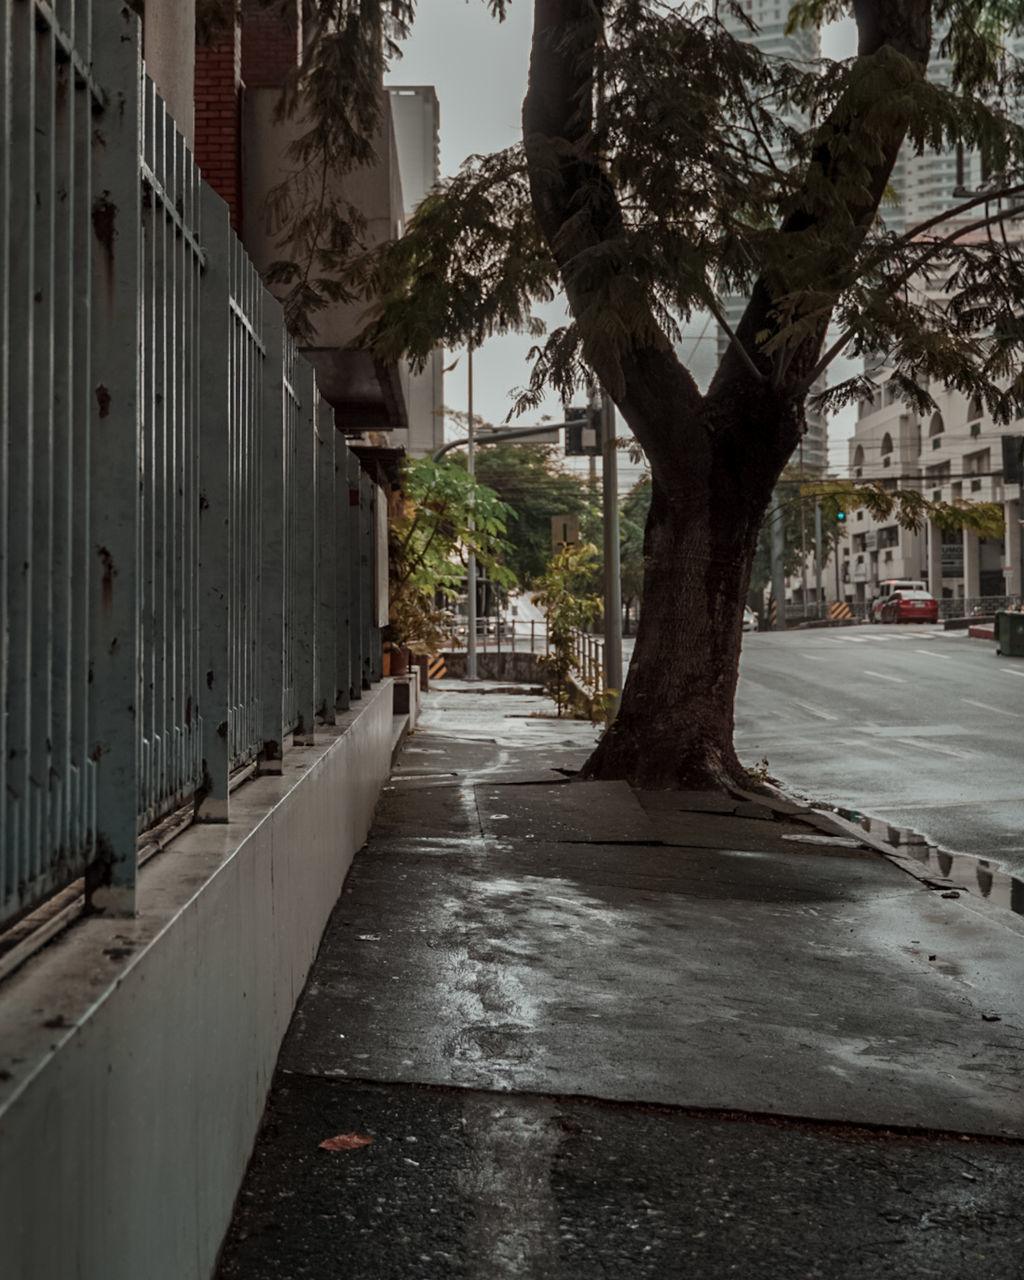 STREET AMIDST TREES AND BUILDINGS